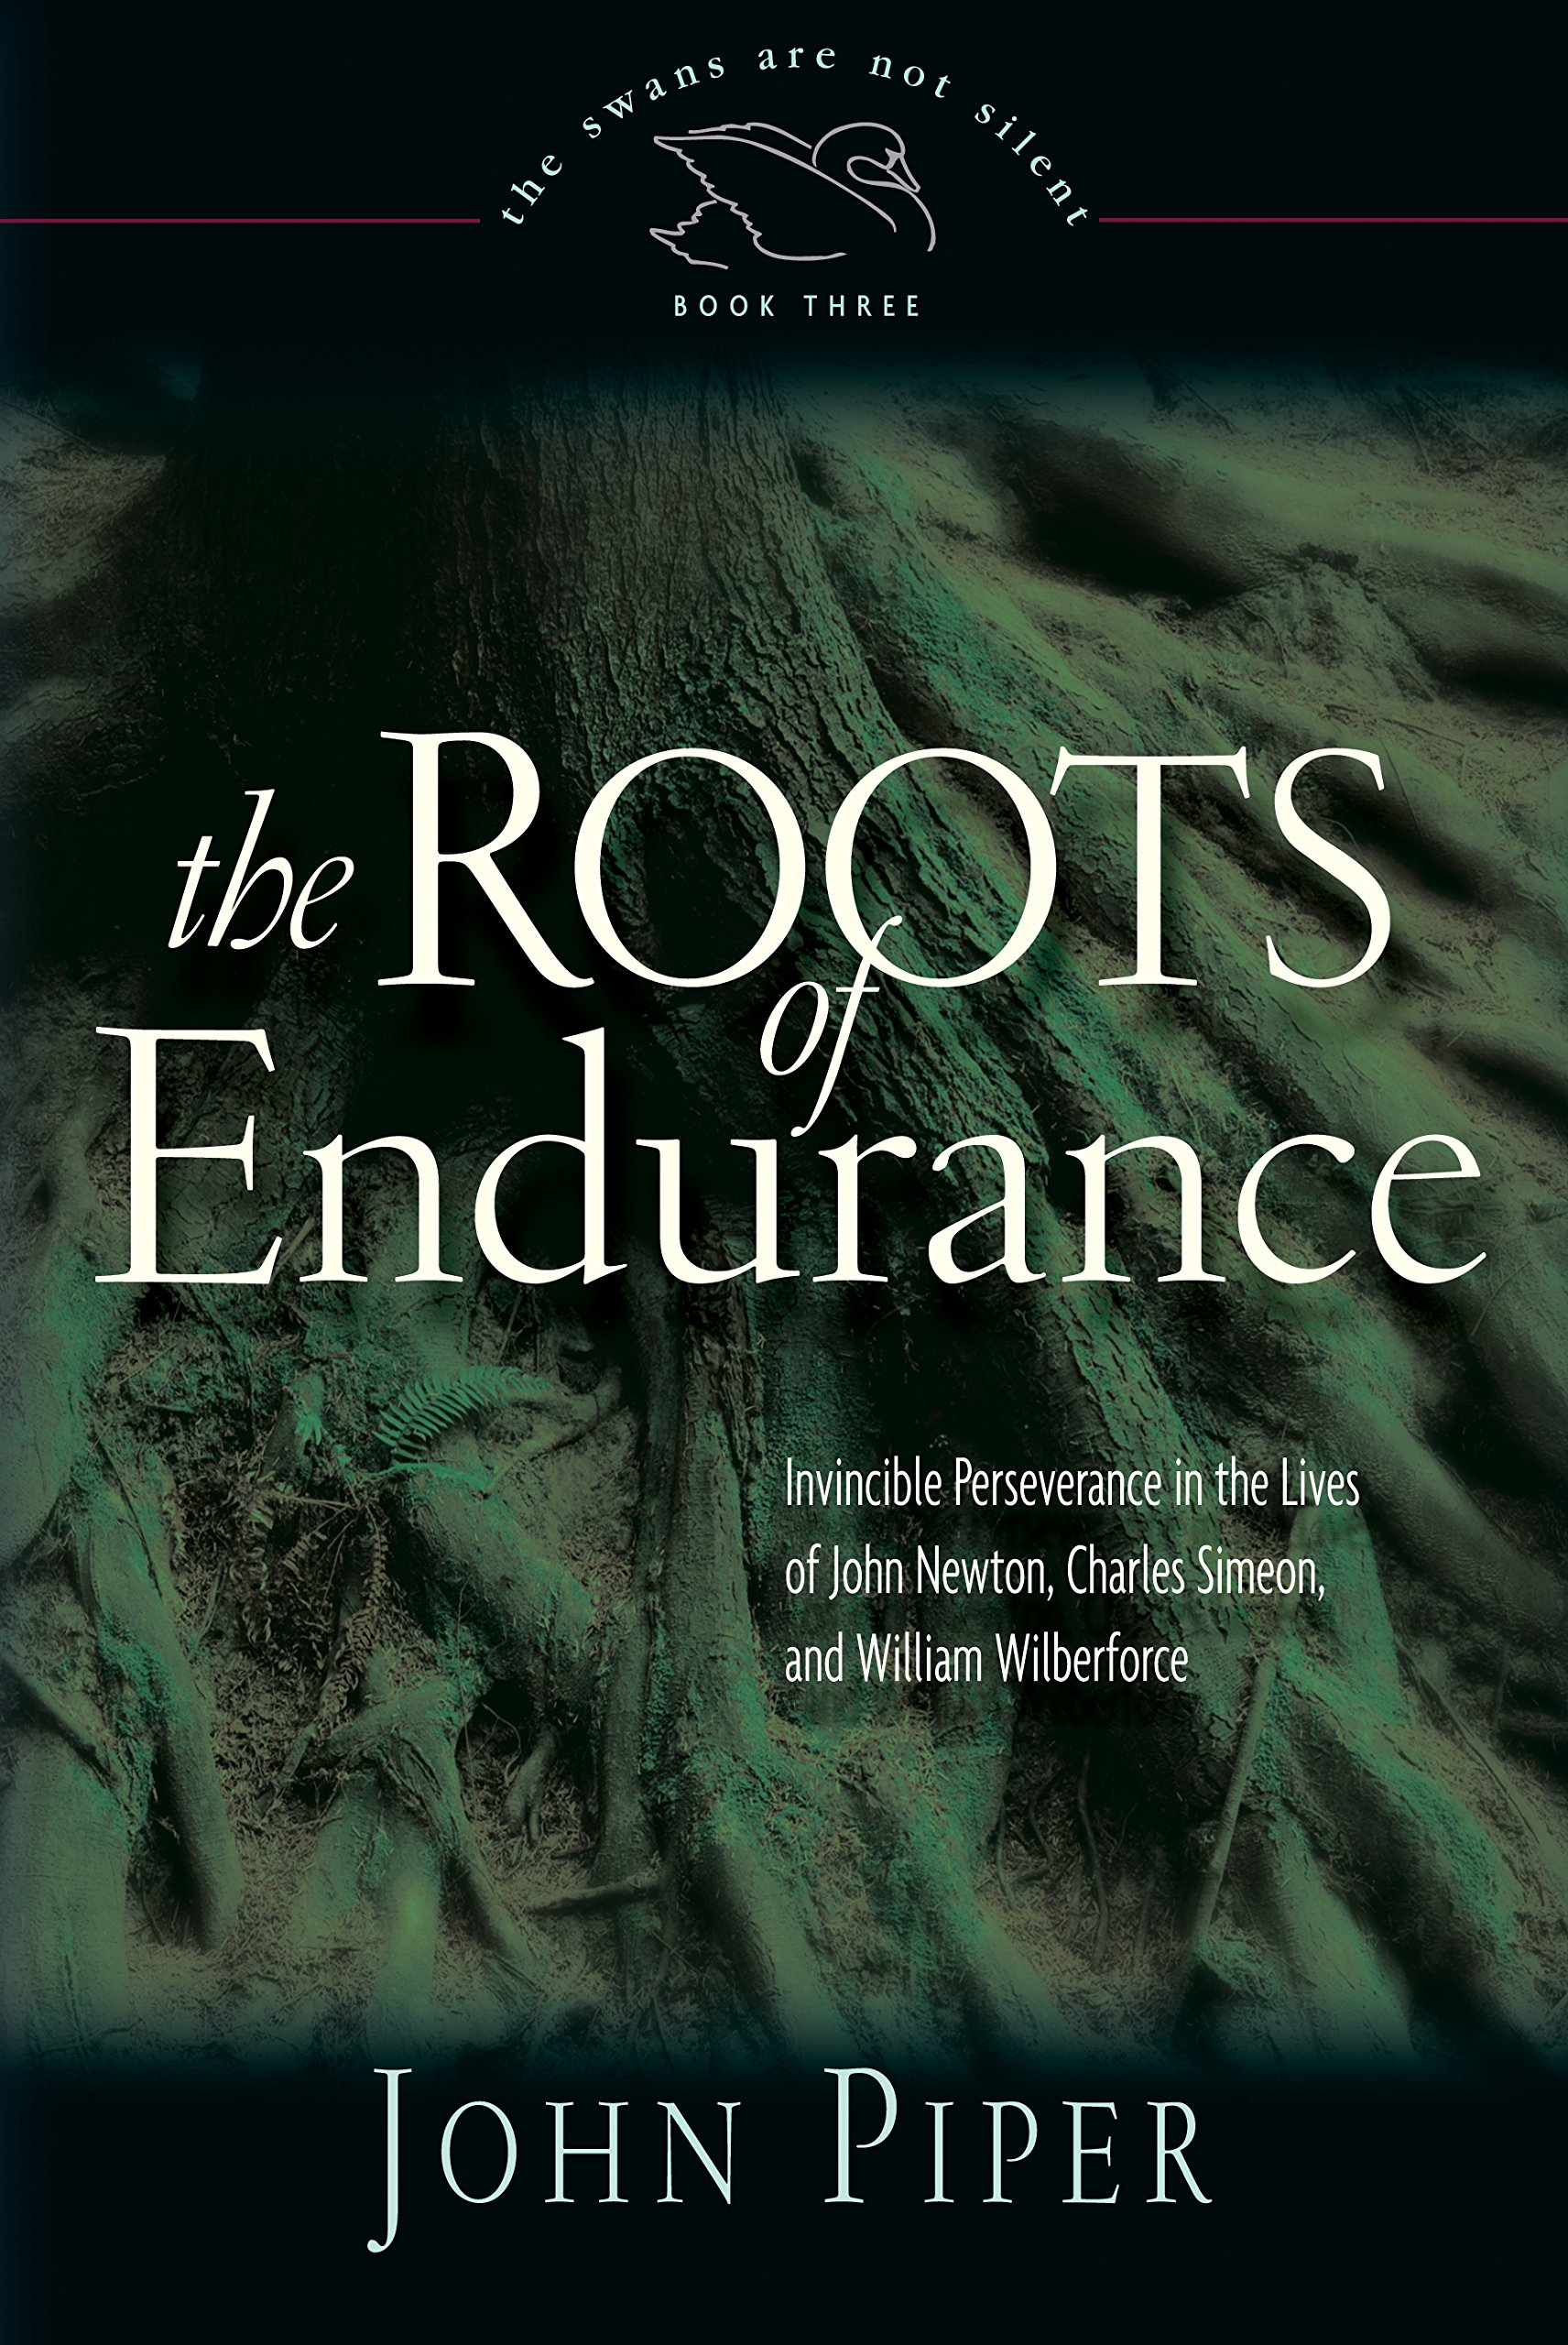 Download The Roots of Endurance: Invincible Perseverance in the Lives of John Newton, Charles Simeon, and William Wilberforce (Swans Are Not Silent) pdf epub